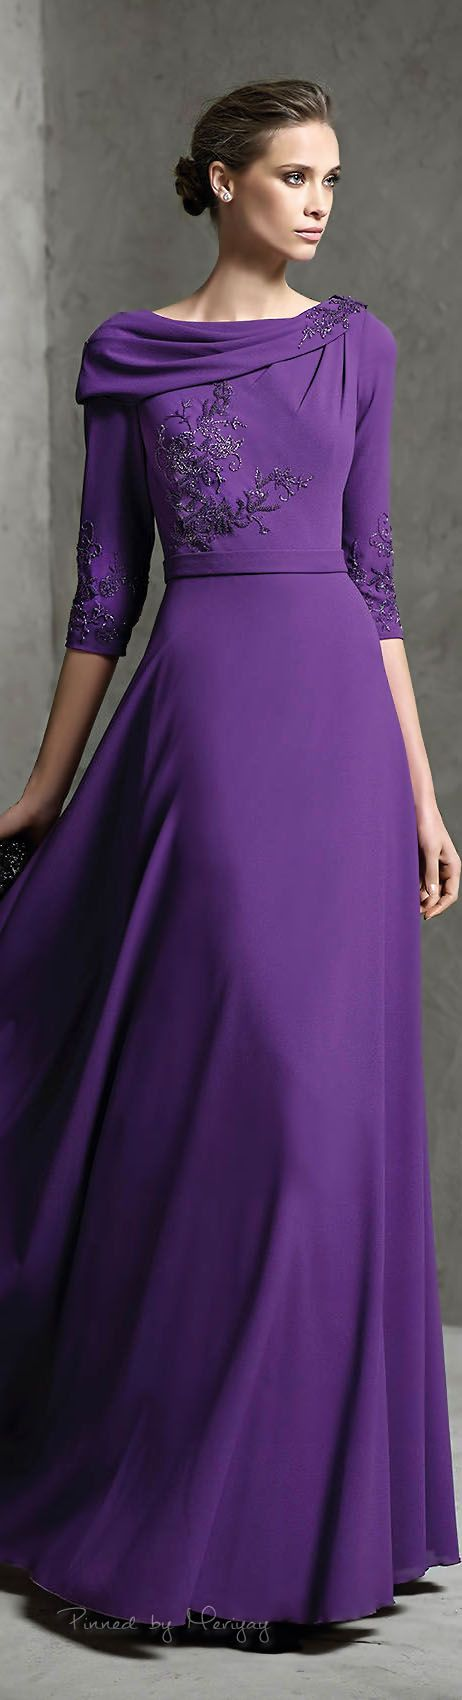 Long sleeve purple mother of the bride dress. Three quarter sleeve evening gowns…